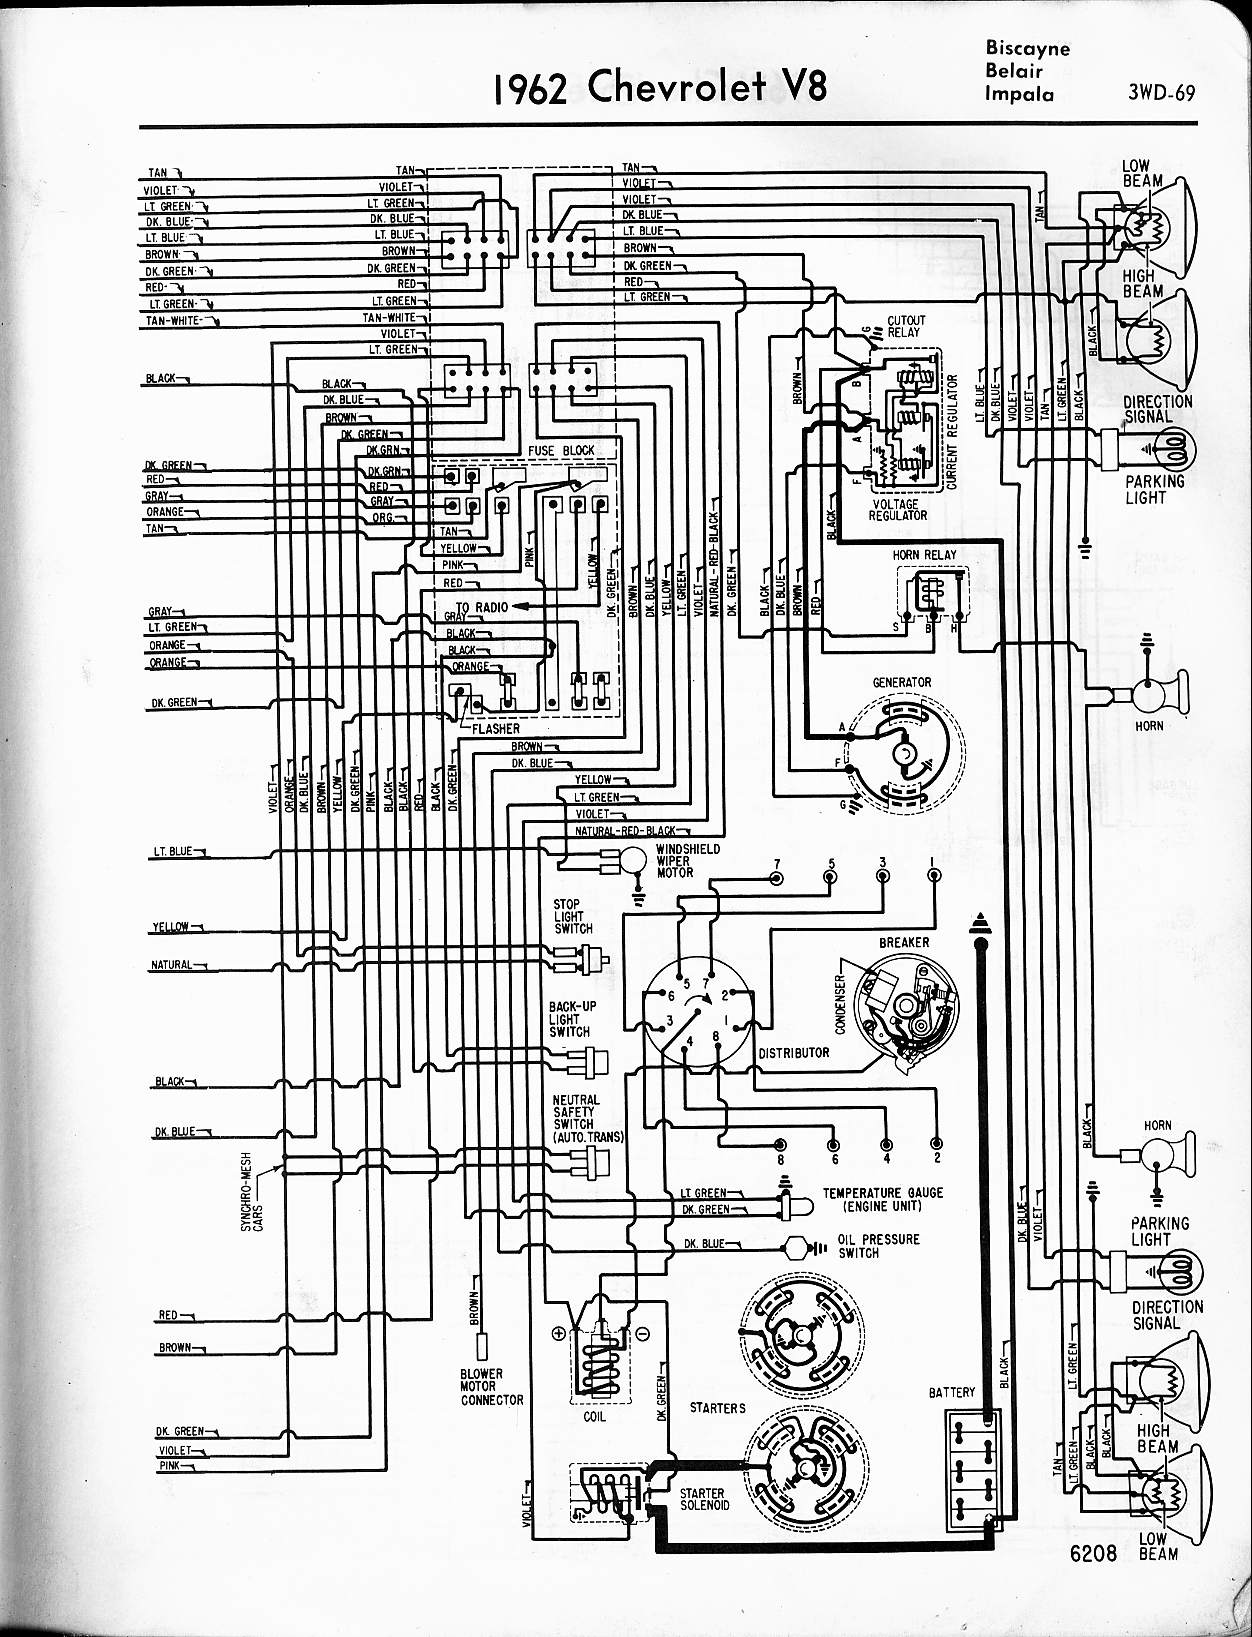 1962 Chevy Impala Wiring Diagram - Answer Wiring Diagrams clue-stable -  clue-stable.unishare.it | Windshield Wiper Wiring Diagram For 2003 Chevy Impala |  | unishare.it